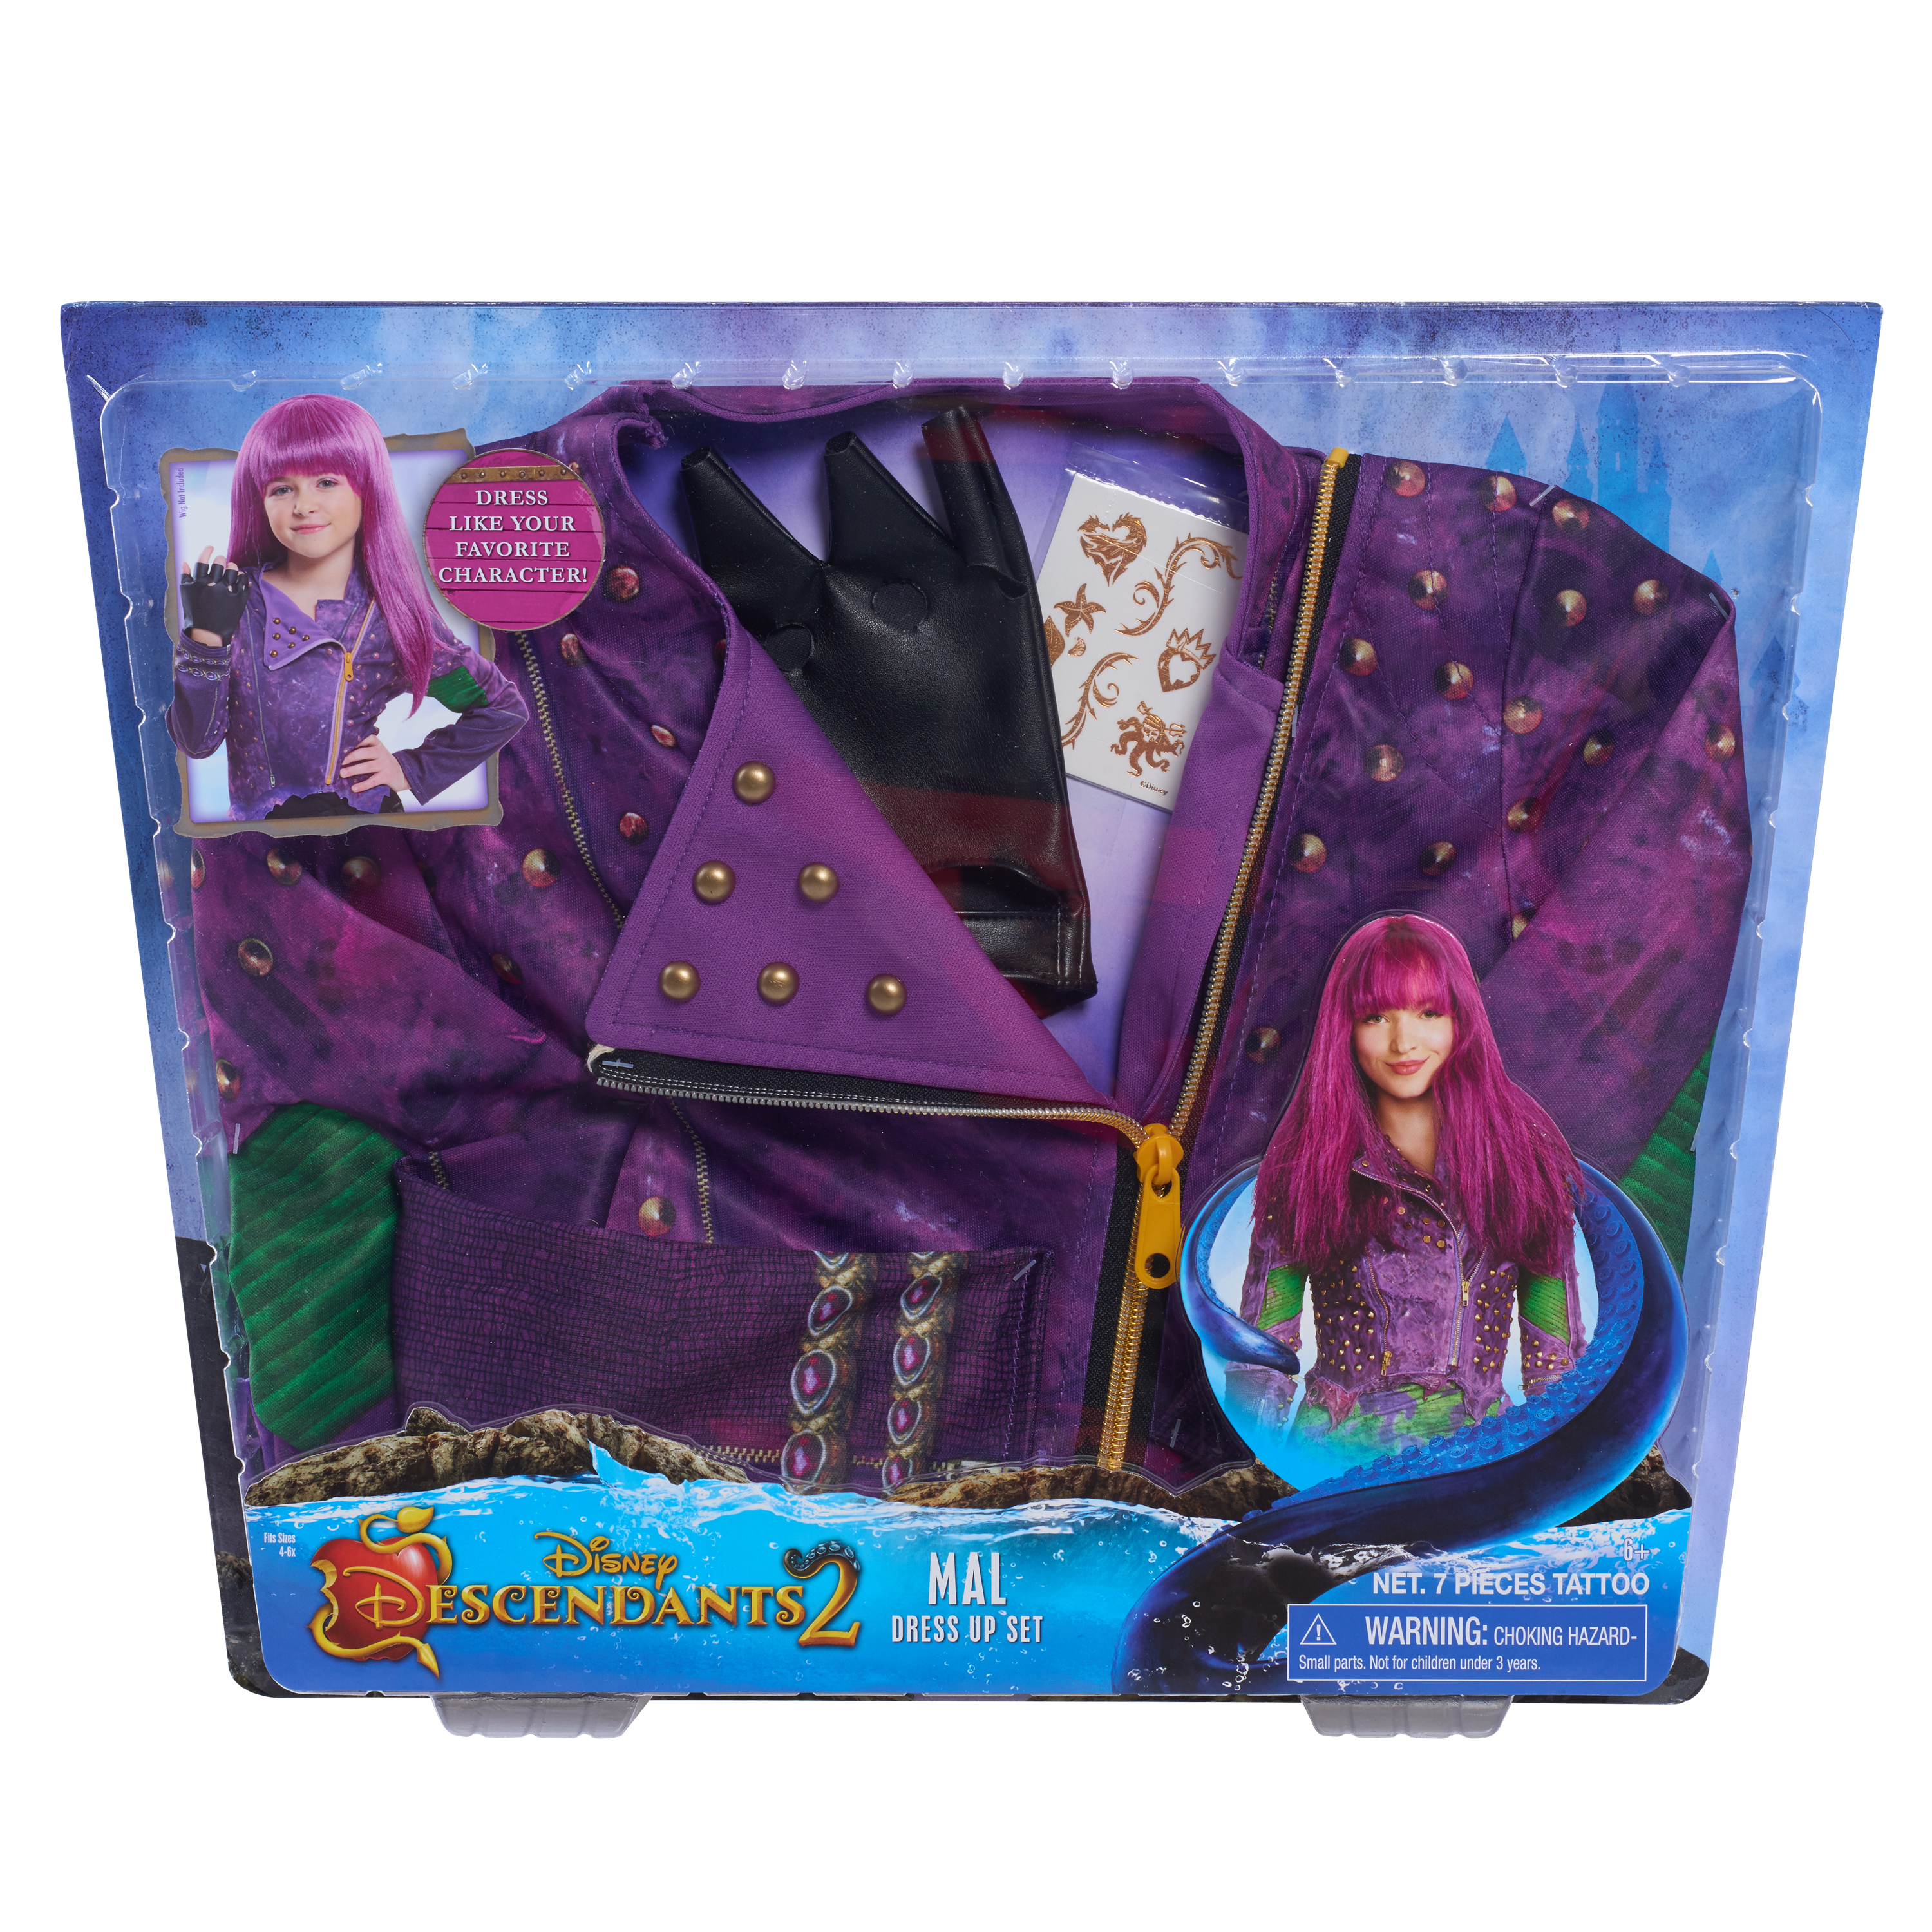 Descendants Dress Up Box Set- Mal Dress Up Box Set - Walmart.com